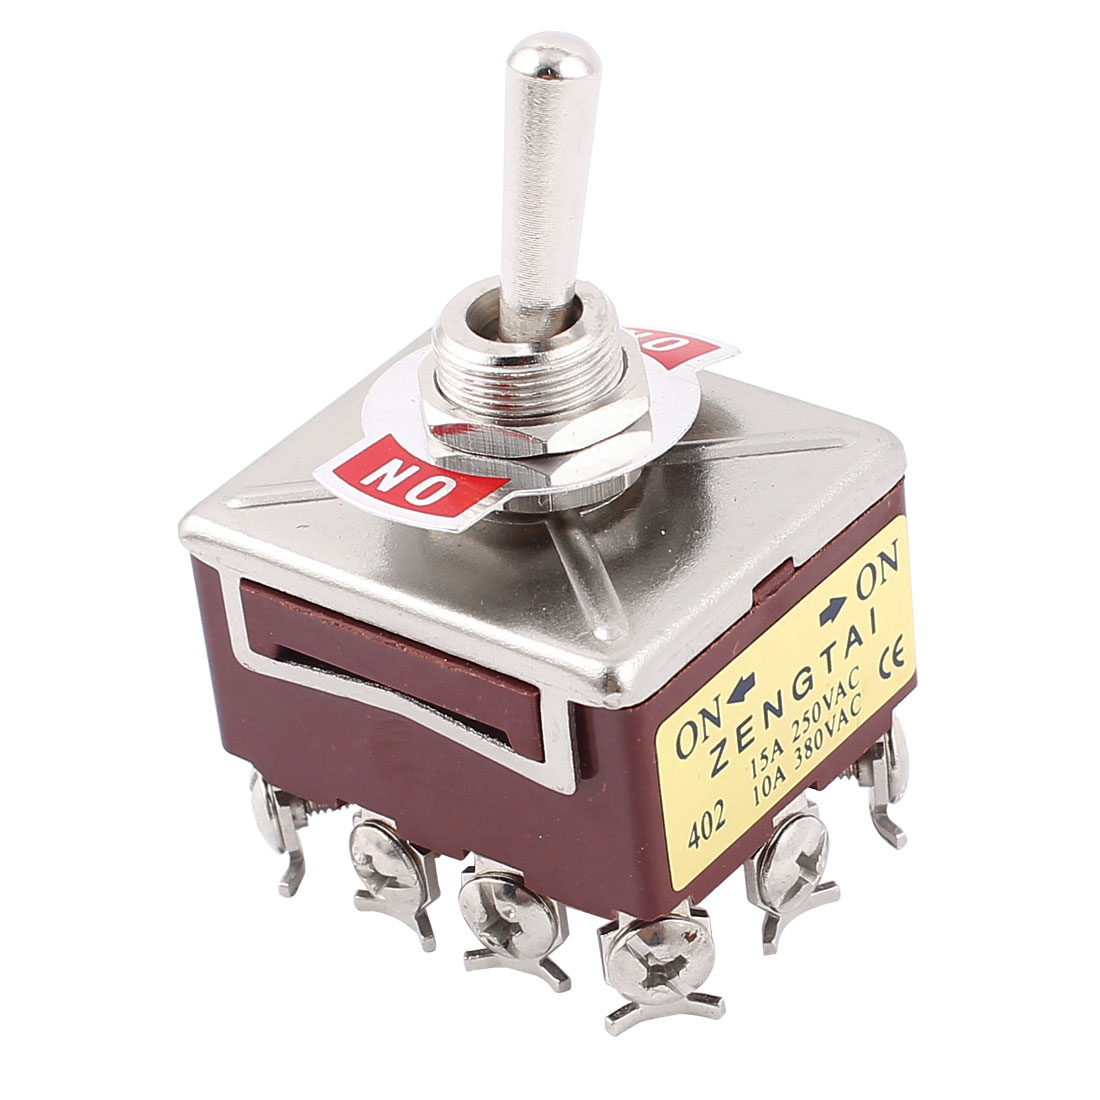 AC 15A/250V 10A/380V 12 Screw Terminals On/On 4PDT Toggle Switch